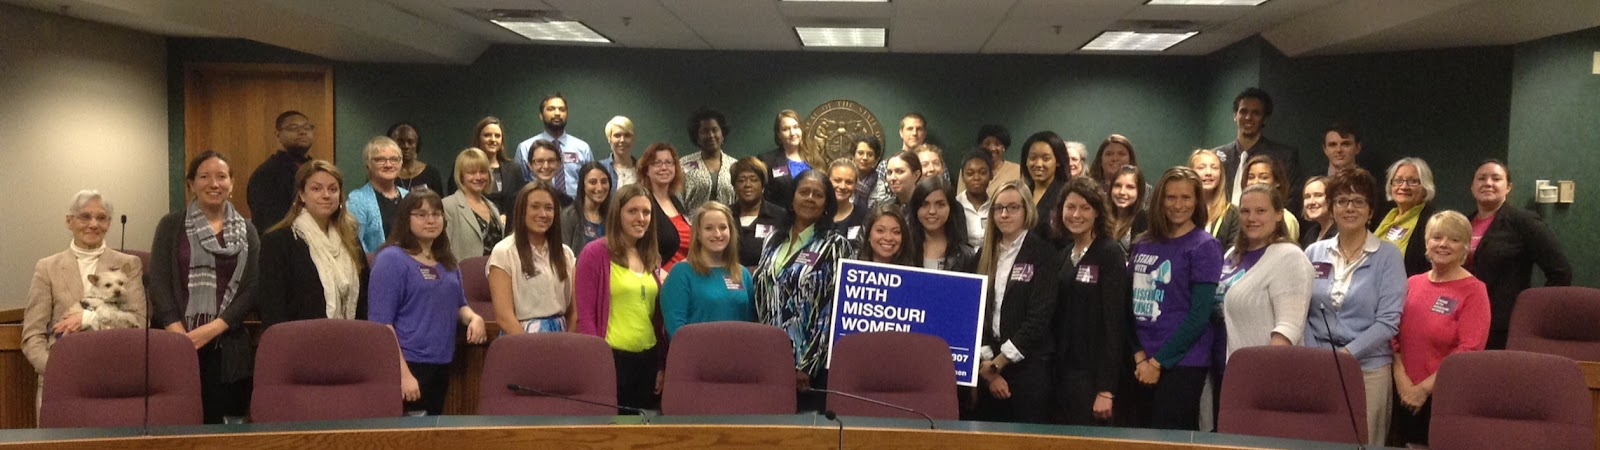 2015 Coalition Lobby Day group shot